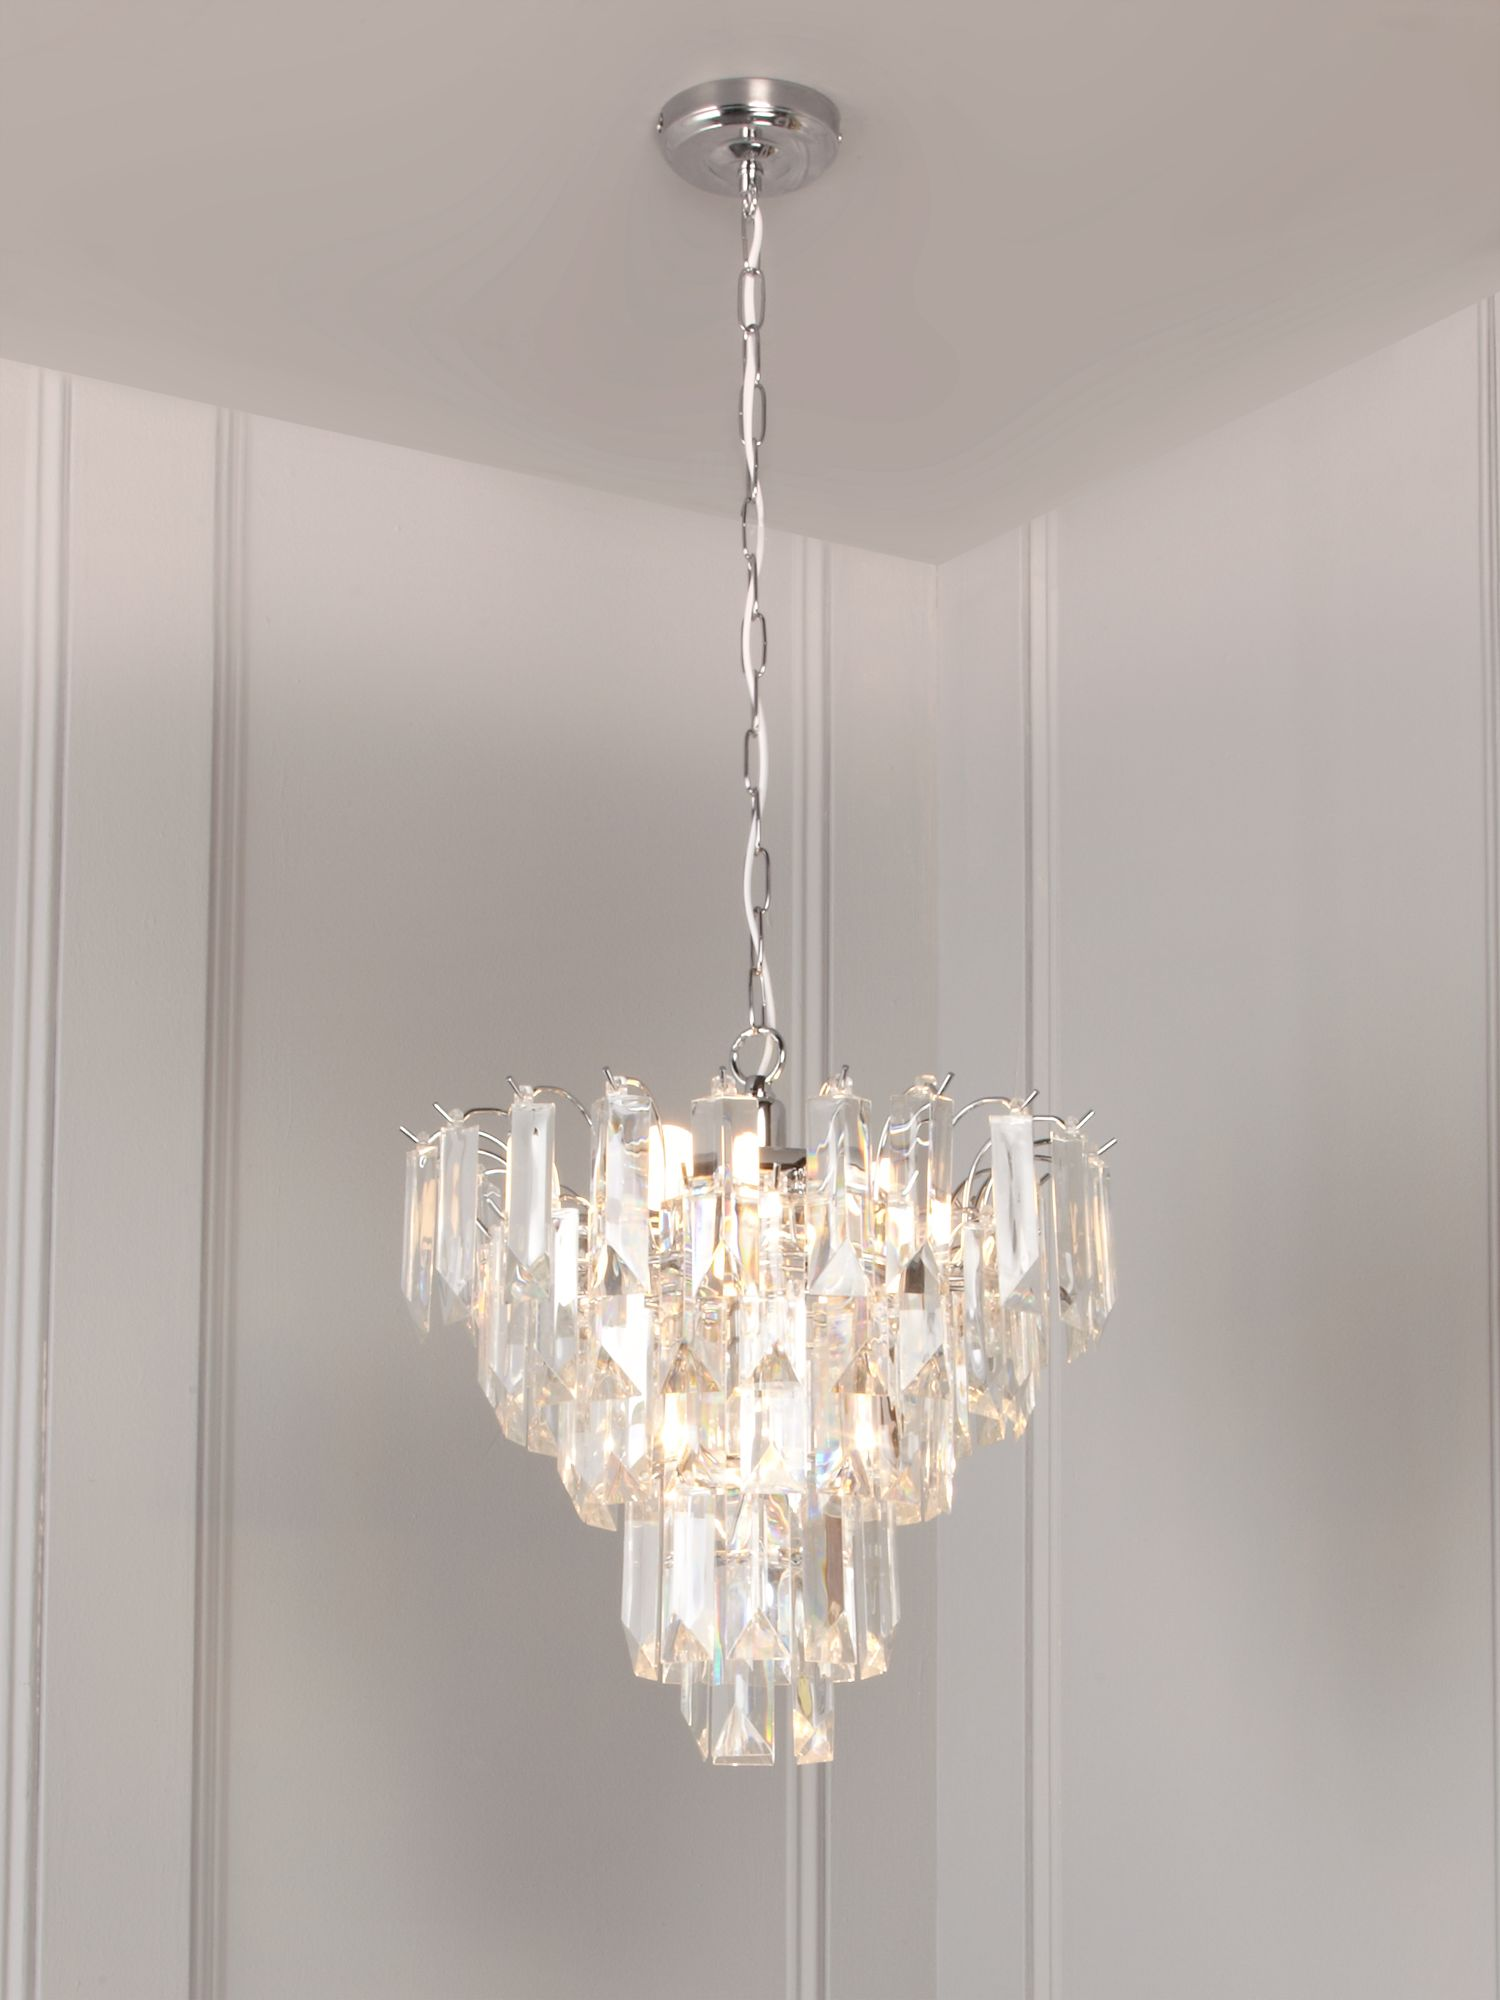 Arabella large ceiling pendant